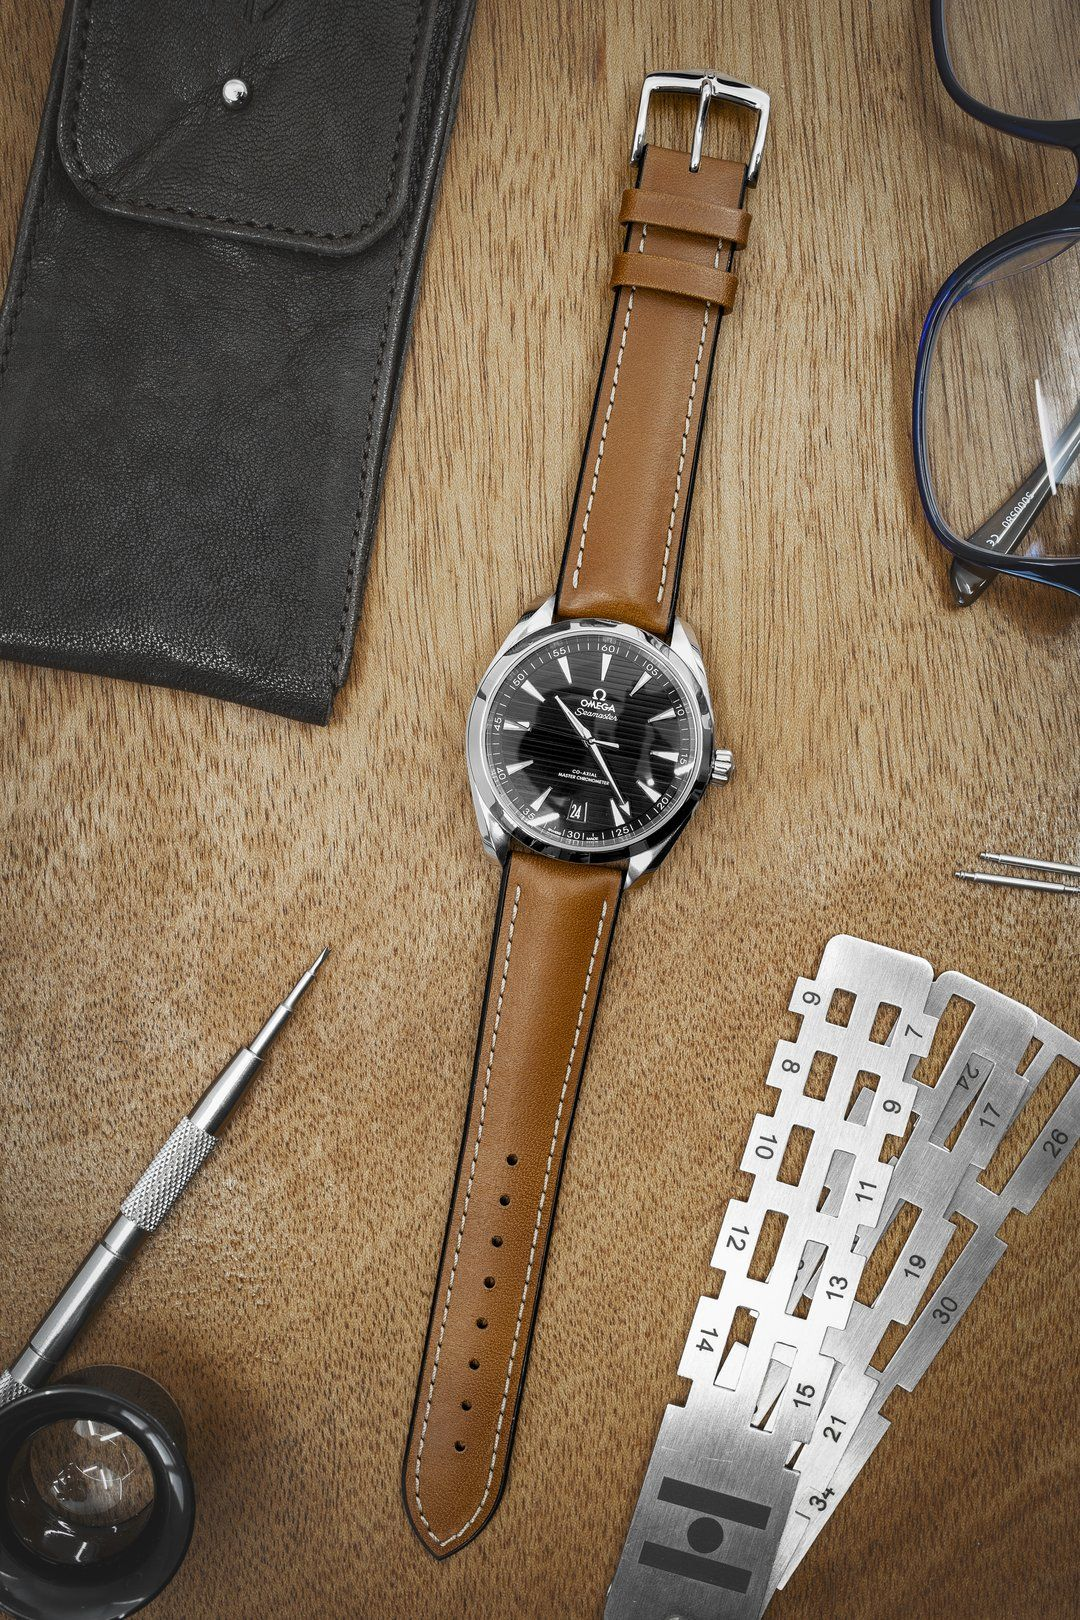 Hirsch james calf leather performance watch strap in gold